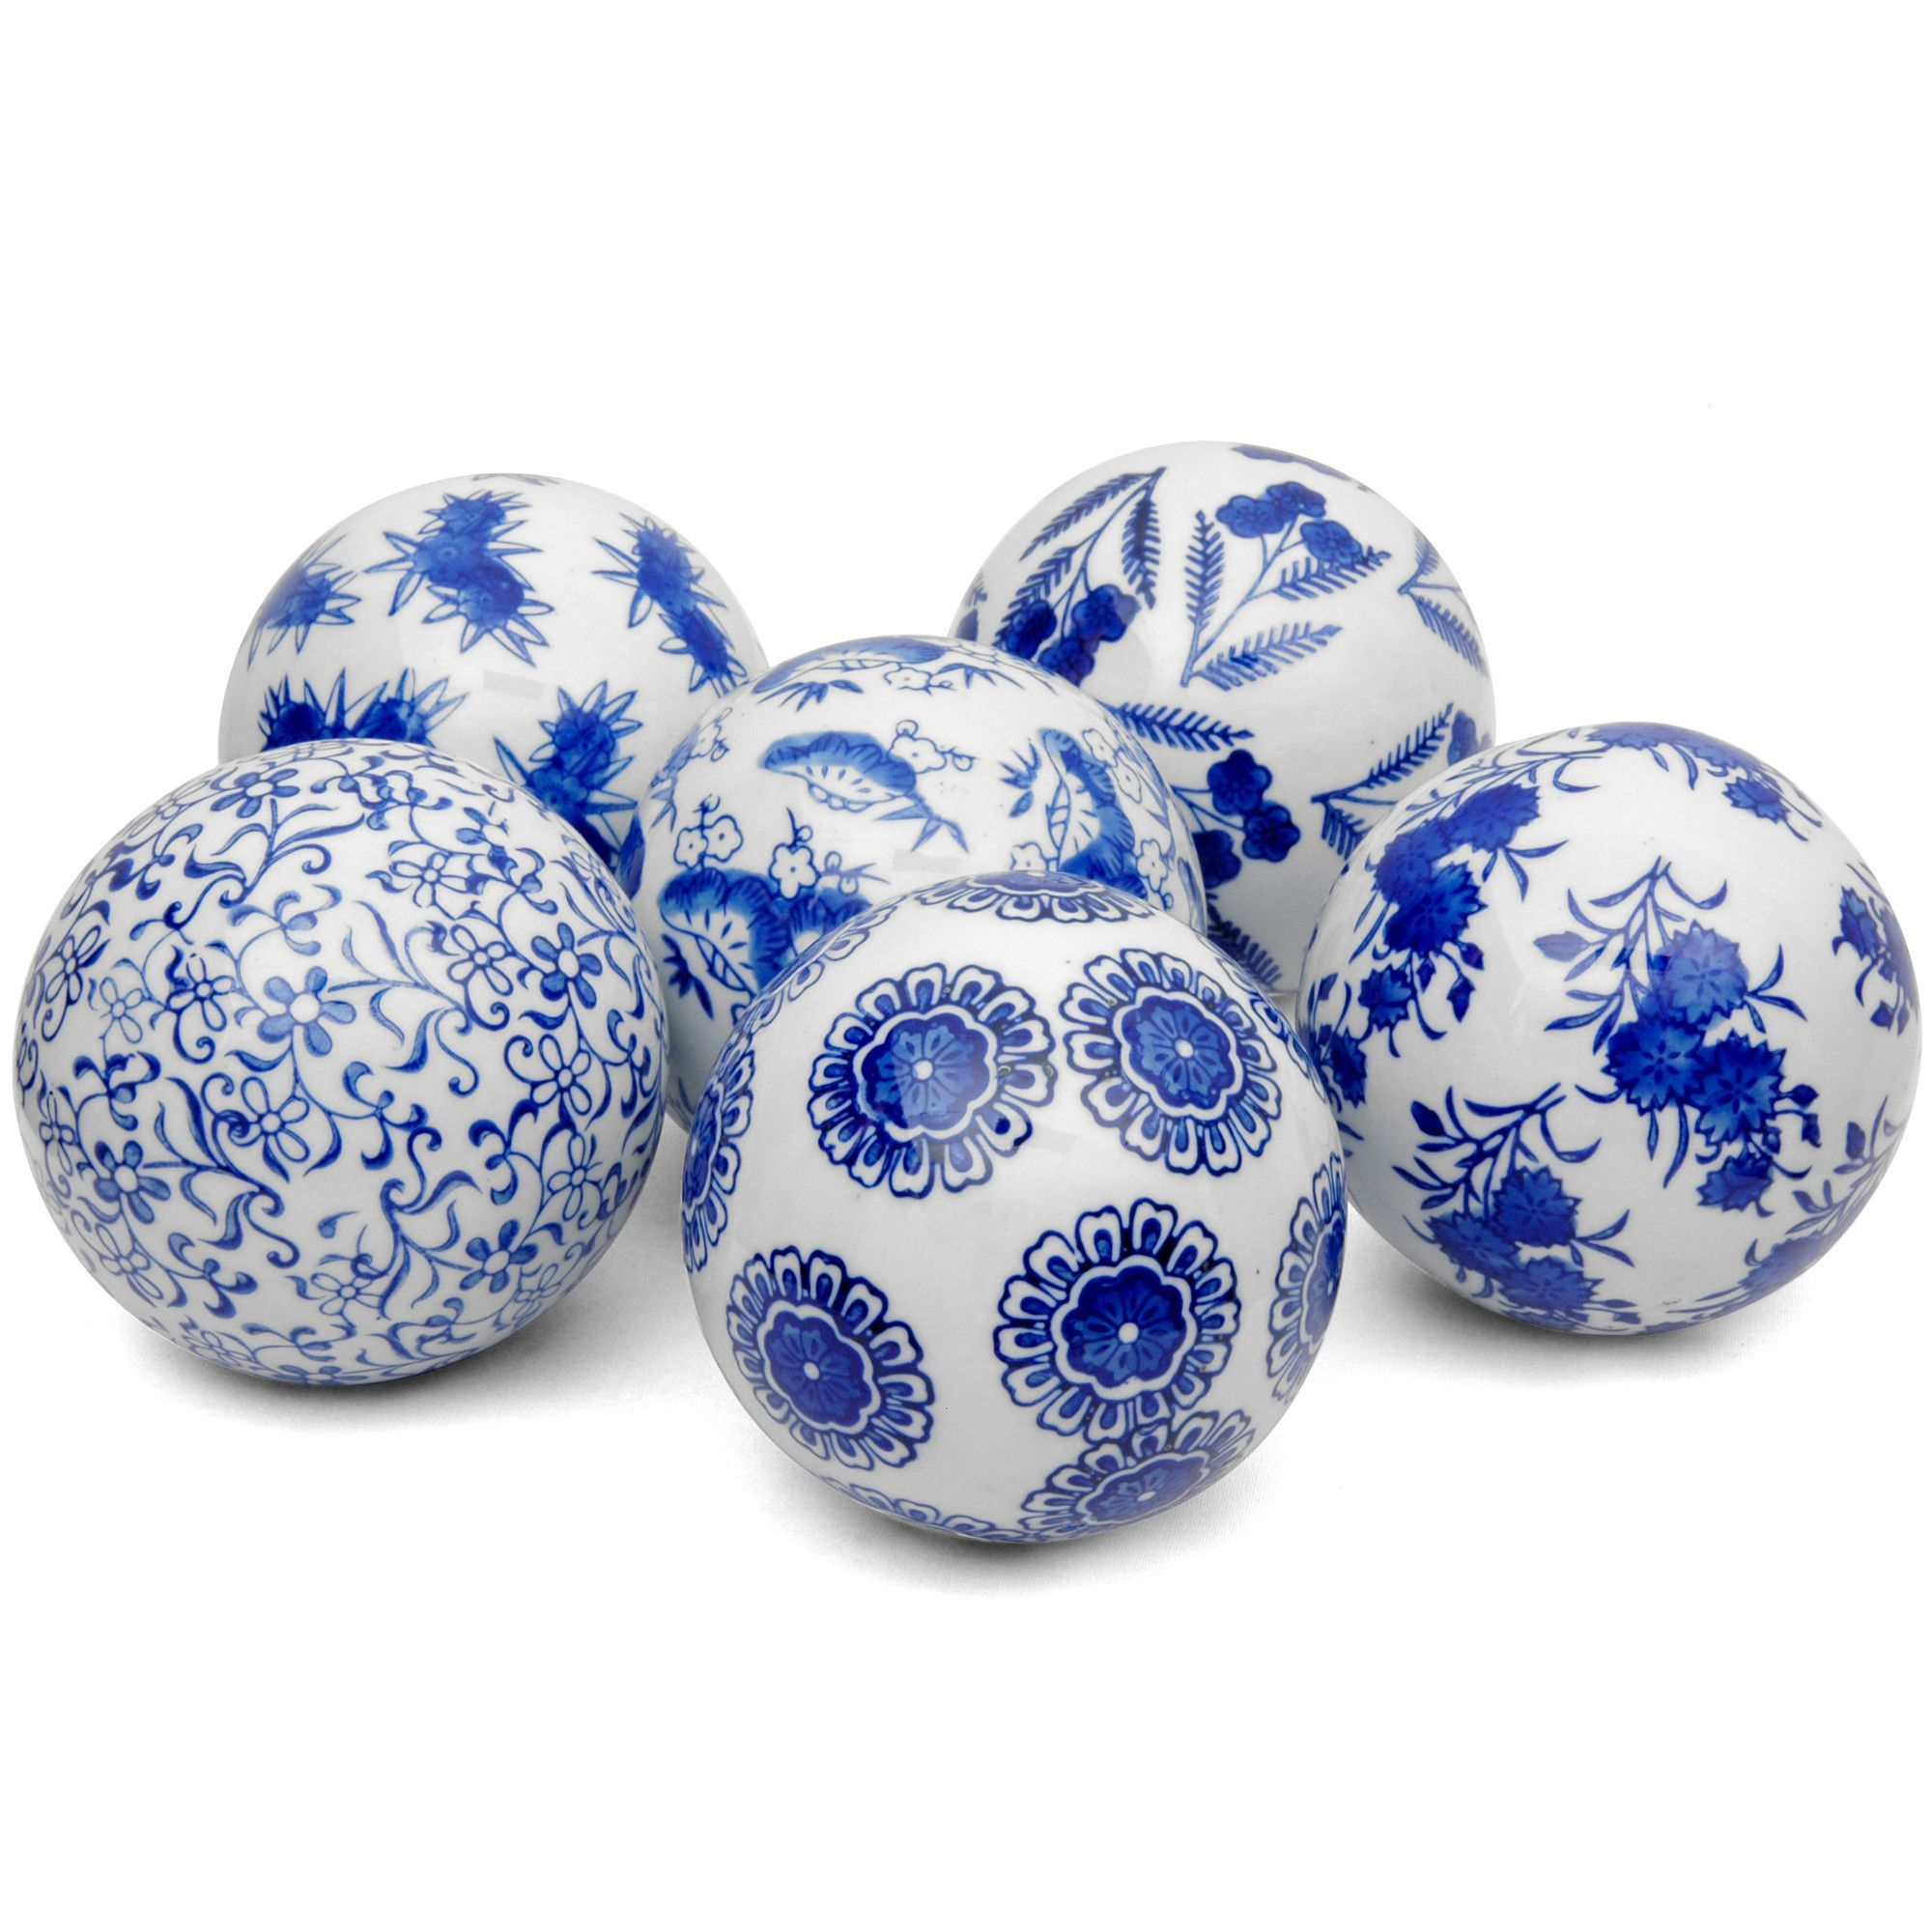 Oriental Design Decorative Ball Sculpture